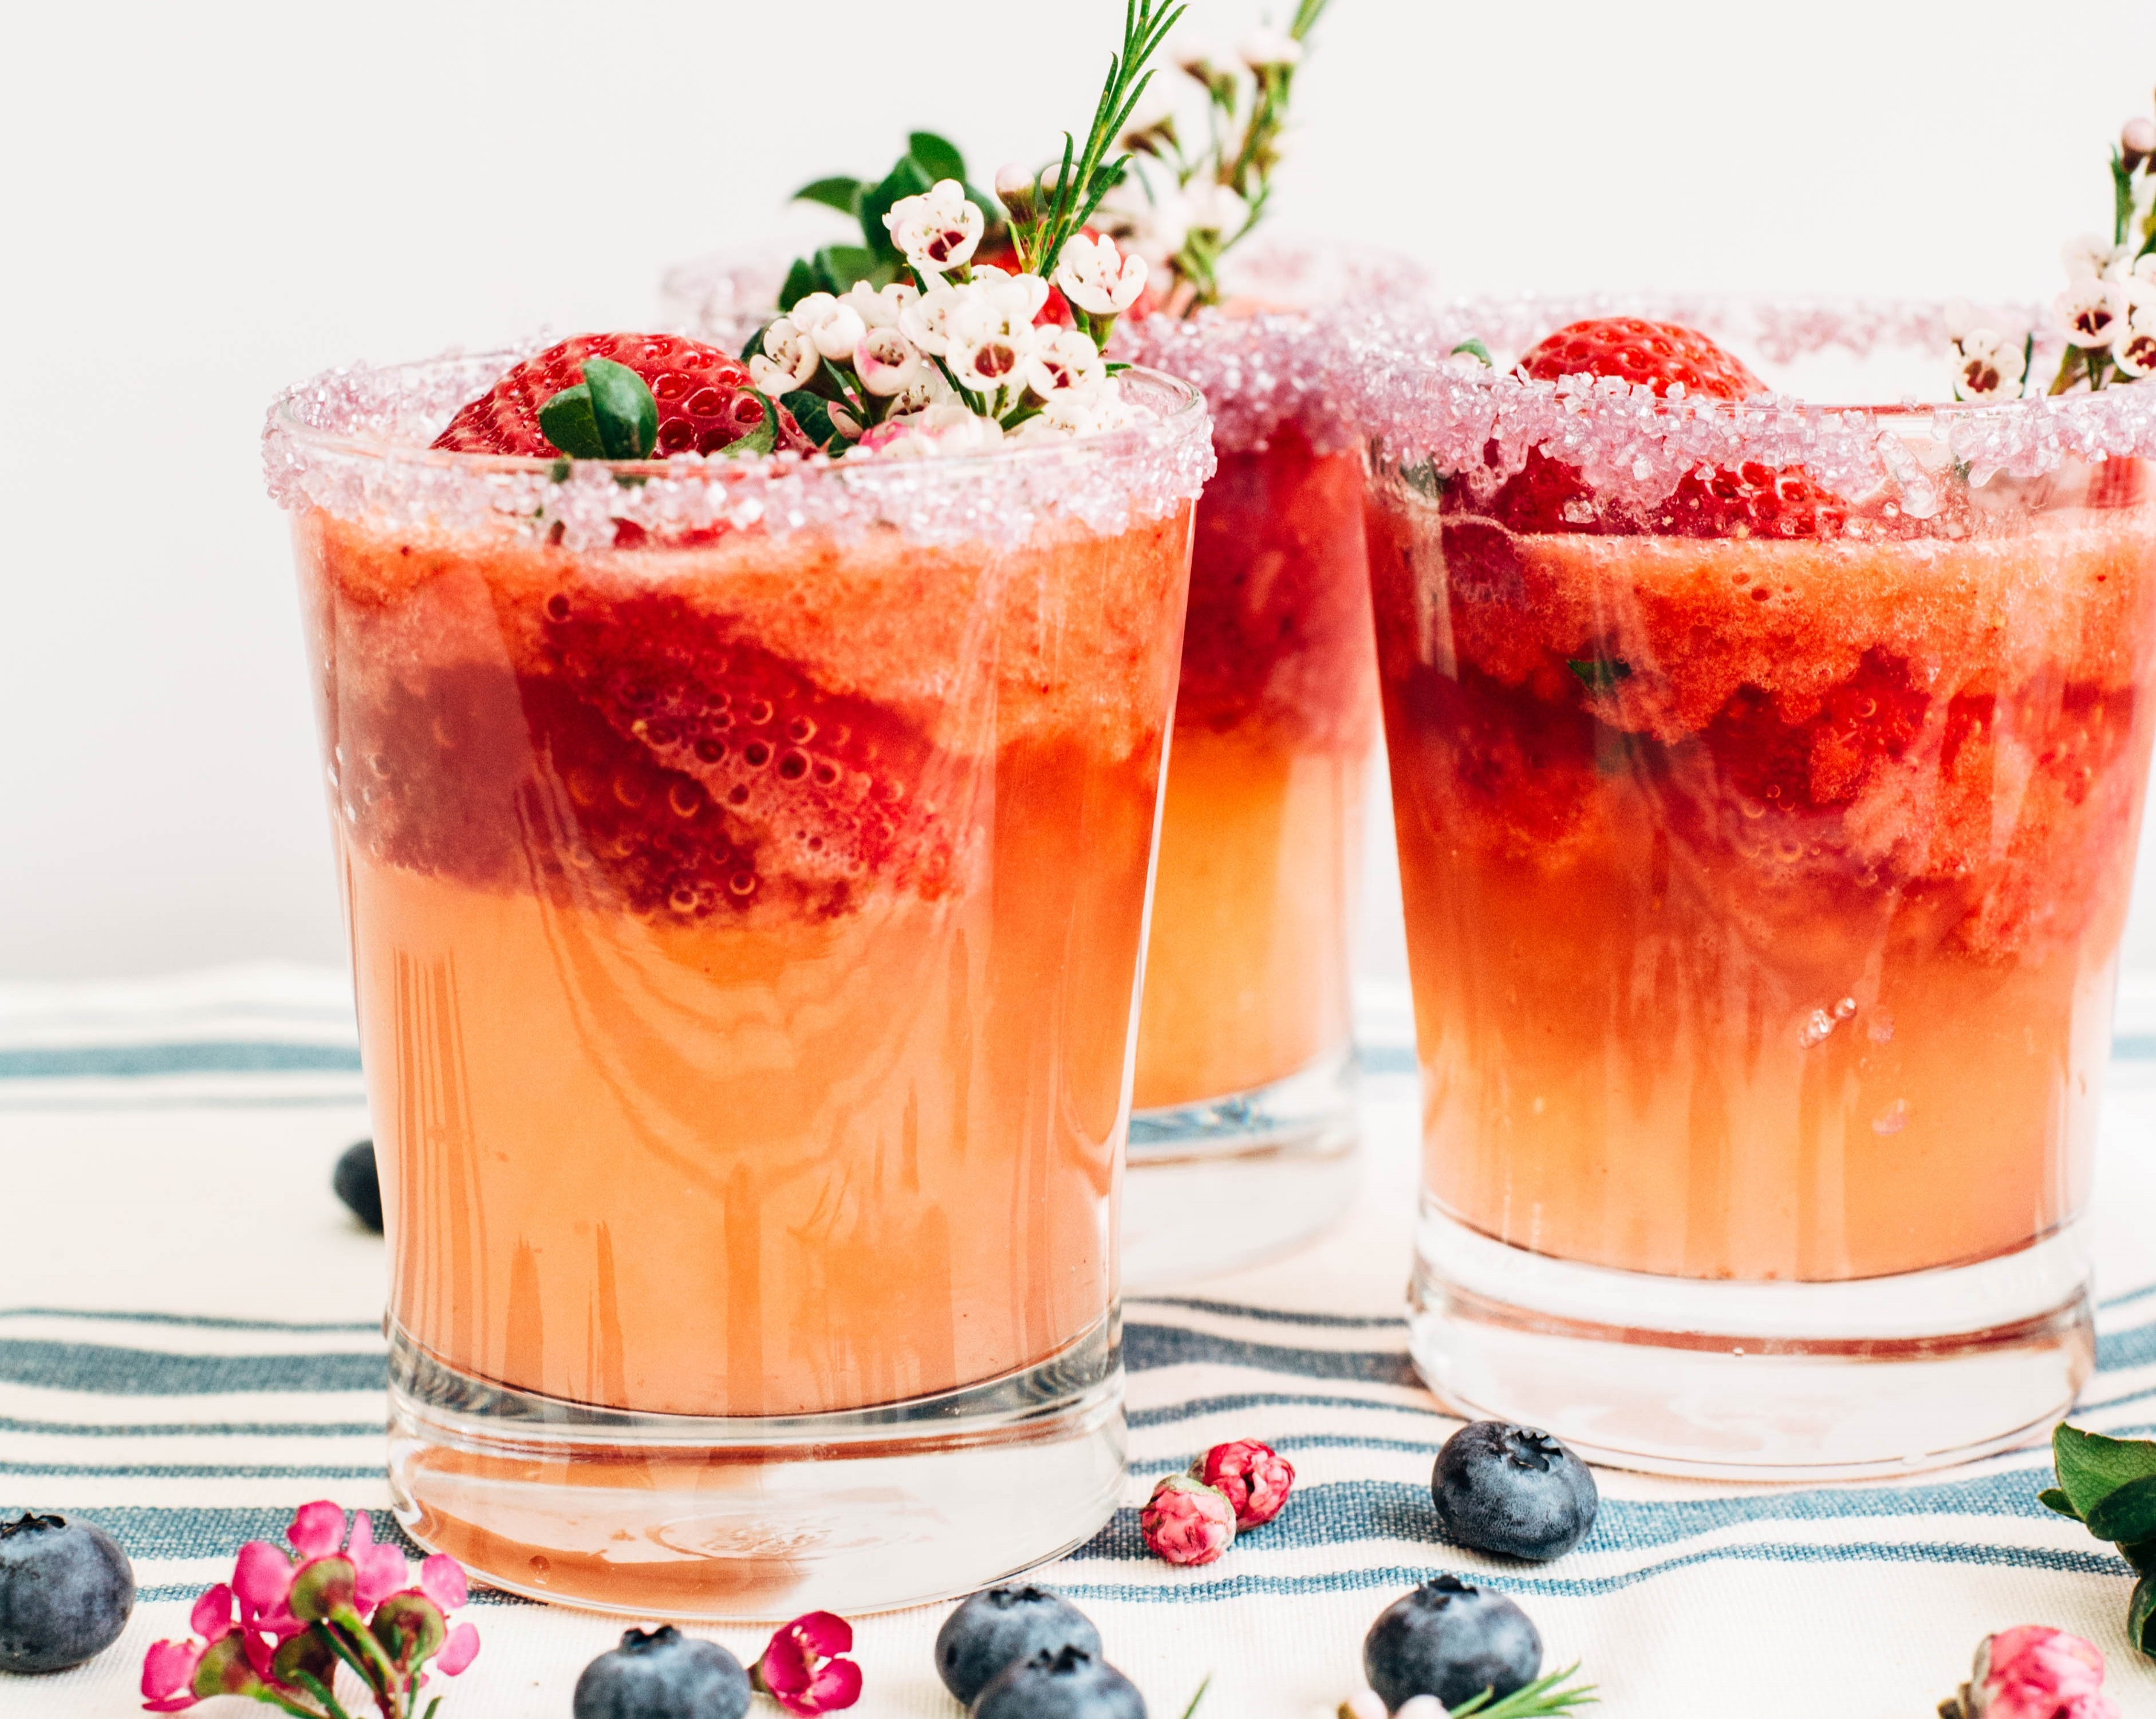 strawberry_lemonade_spritzer-16-838685-edited